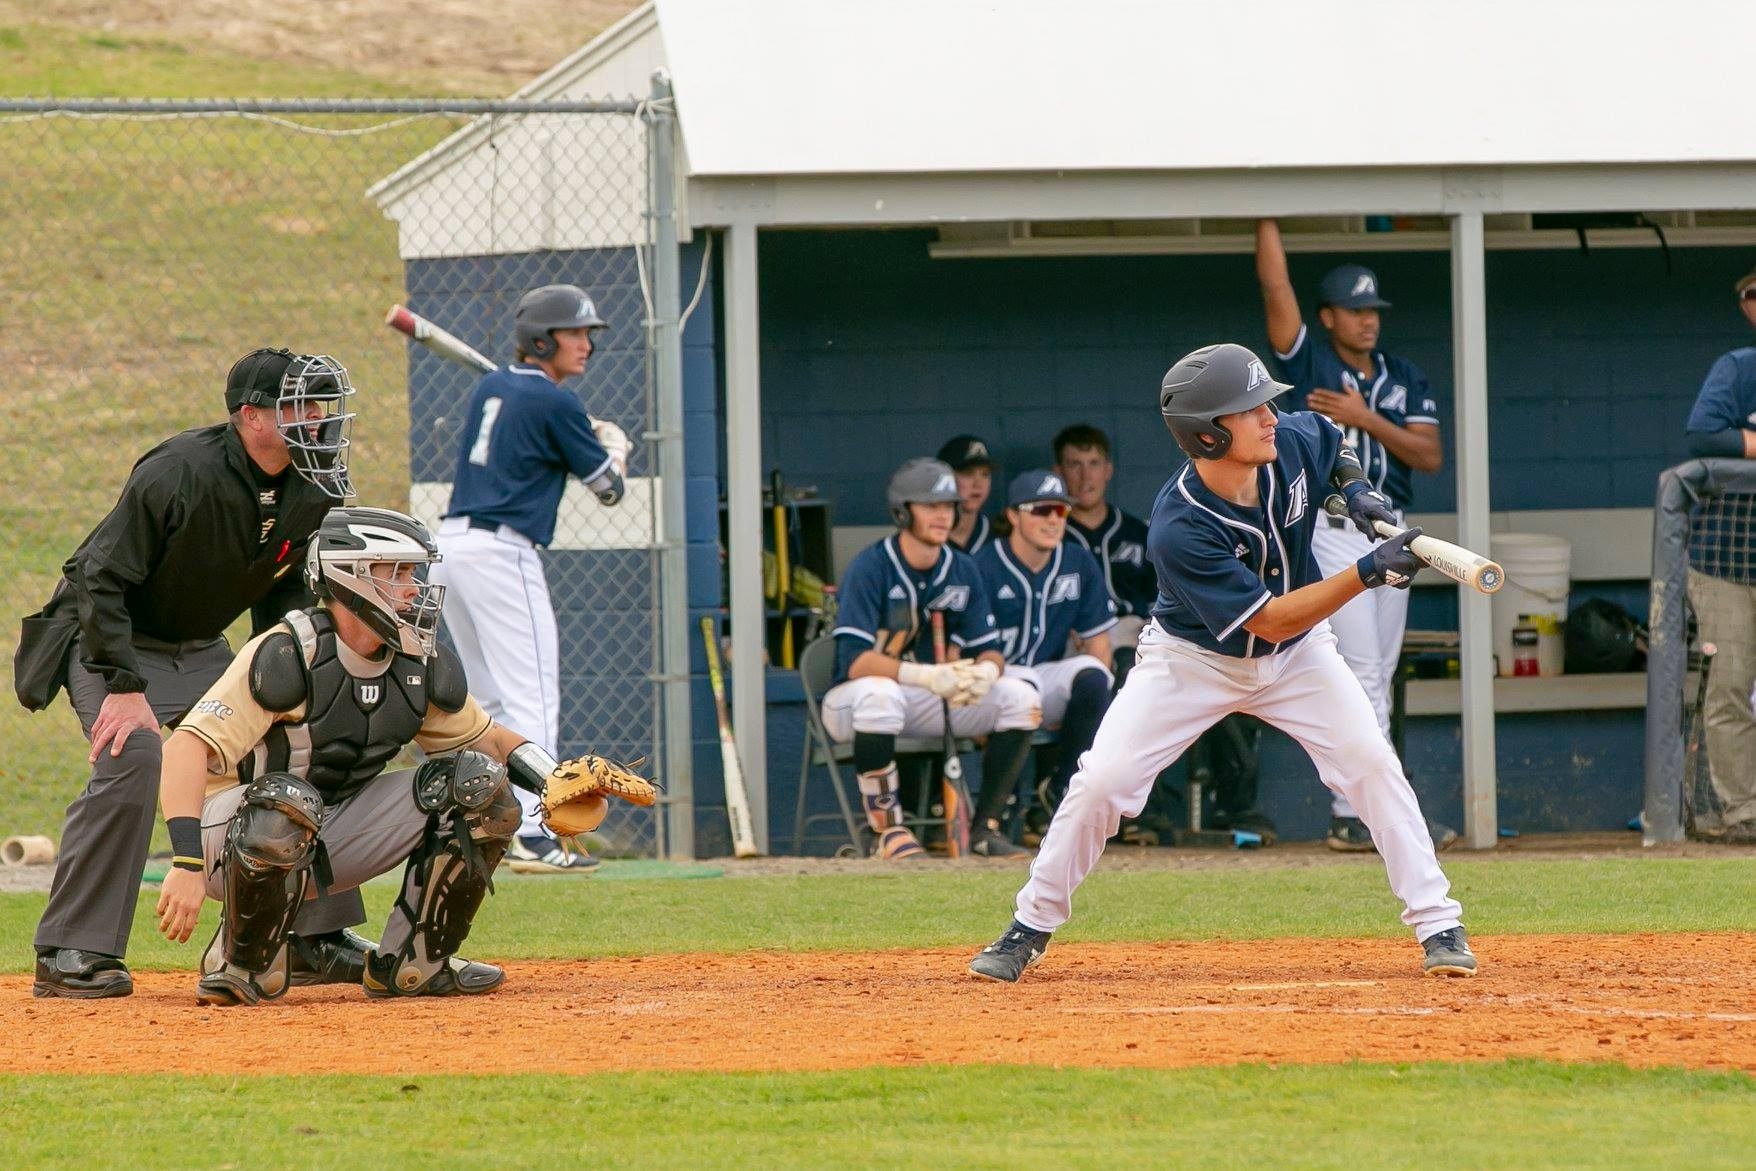 Augusta Rallies From Behind To Win 12-6 At Anderson